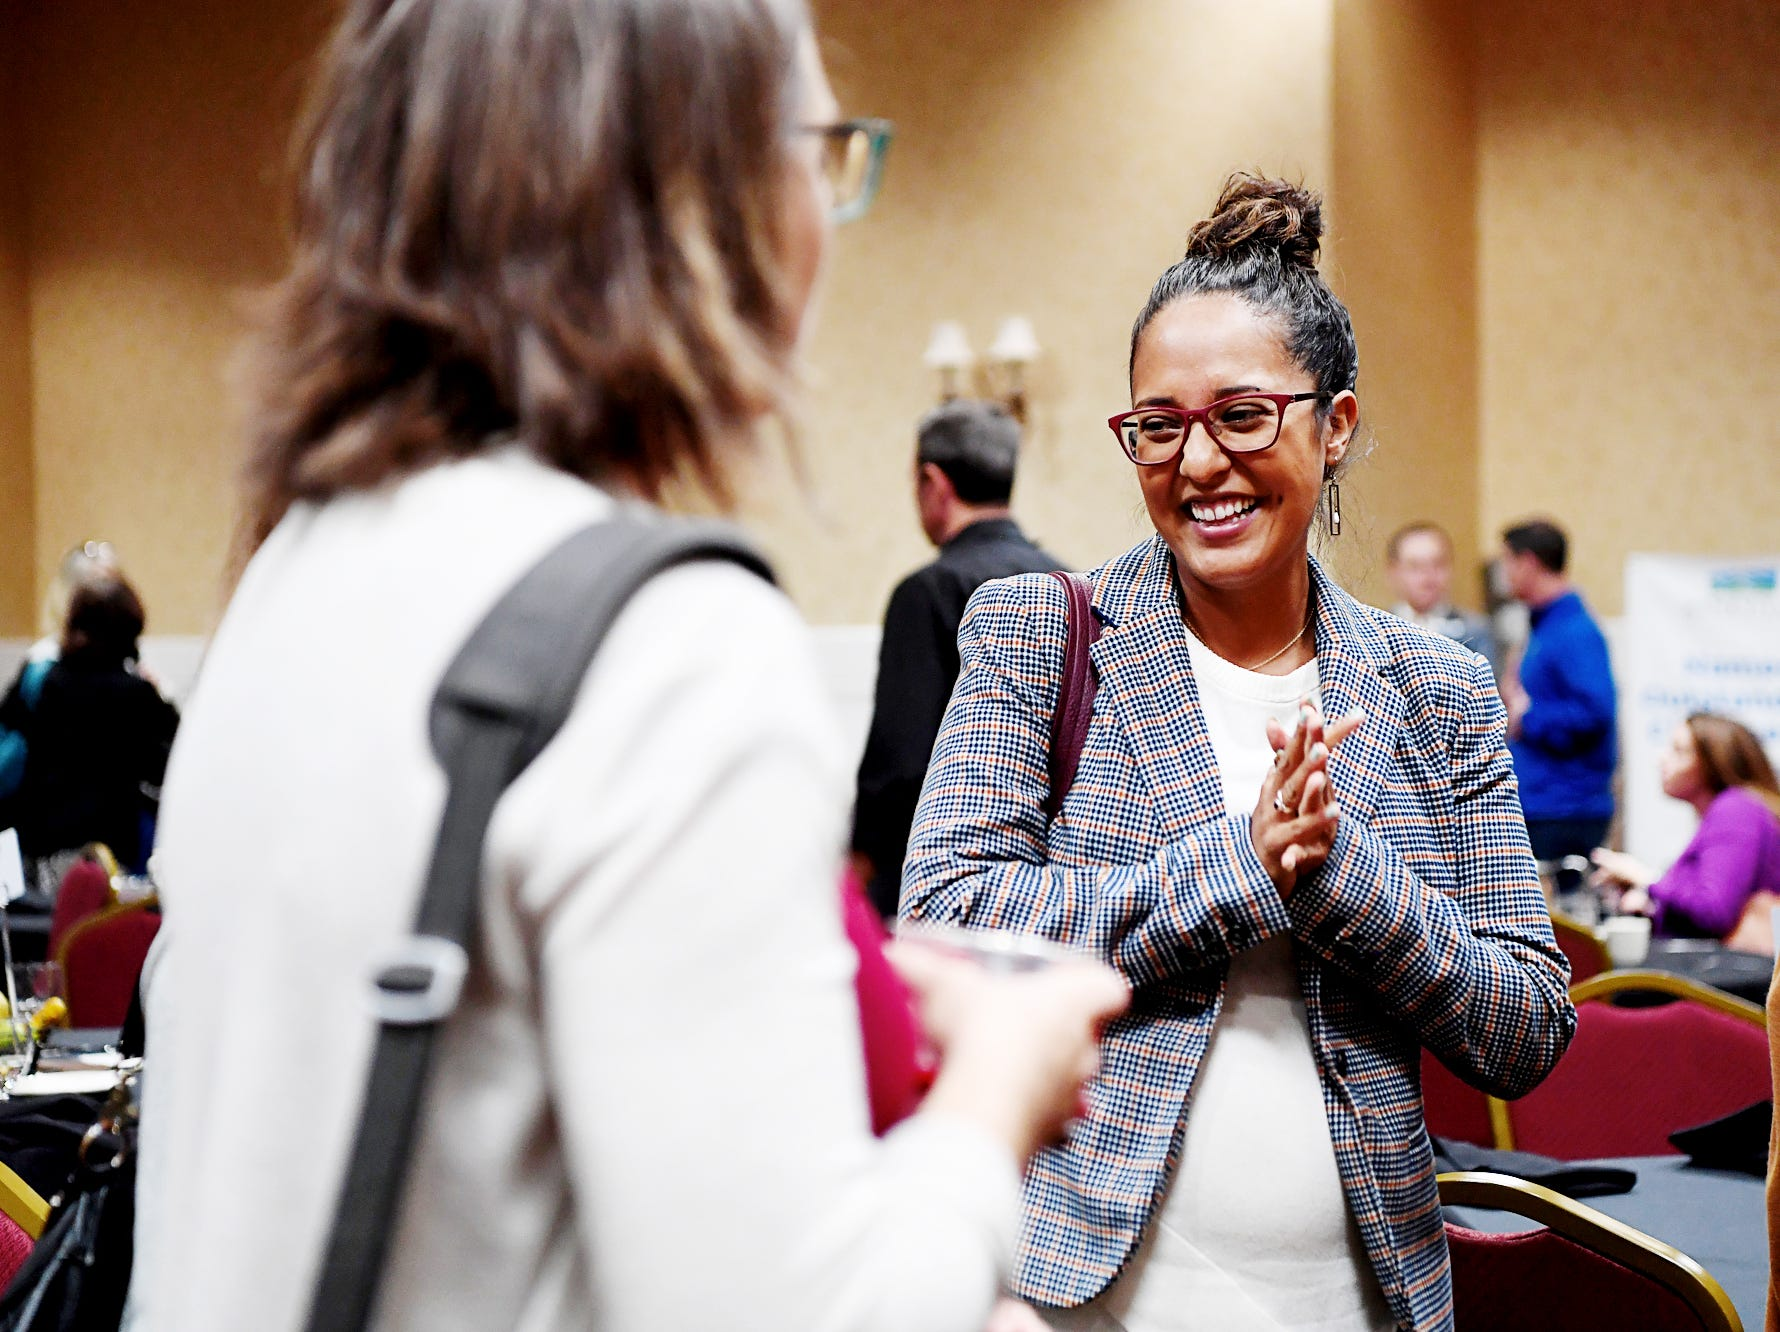 The Asheville Area Chamber of Commerce hosted their annual WomanUp gathering to celebrate women in business with keynote speaker Rebecca Ryan at the Crowne Plaza Nov. 8, 2018.